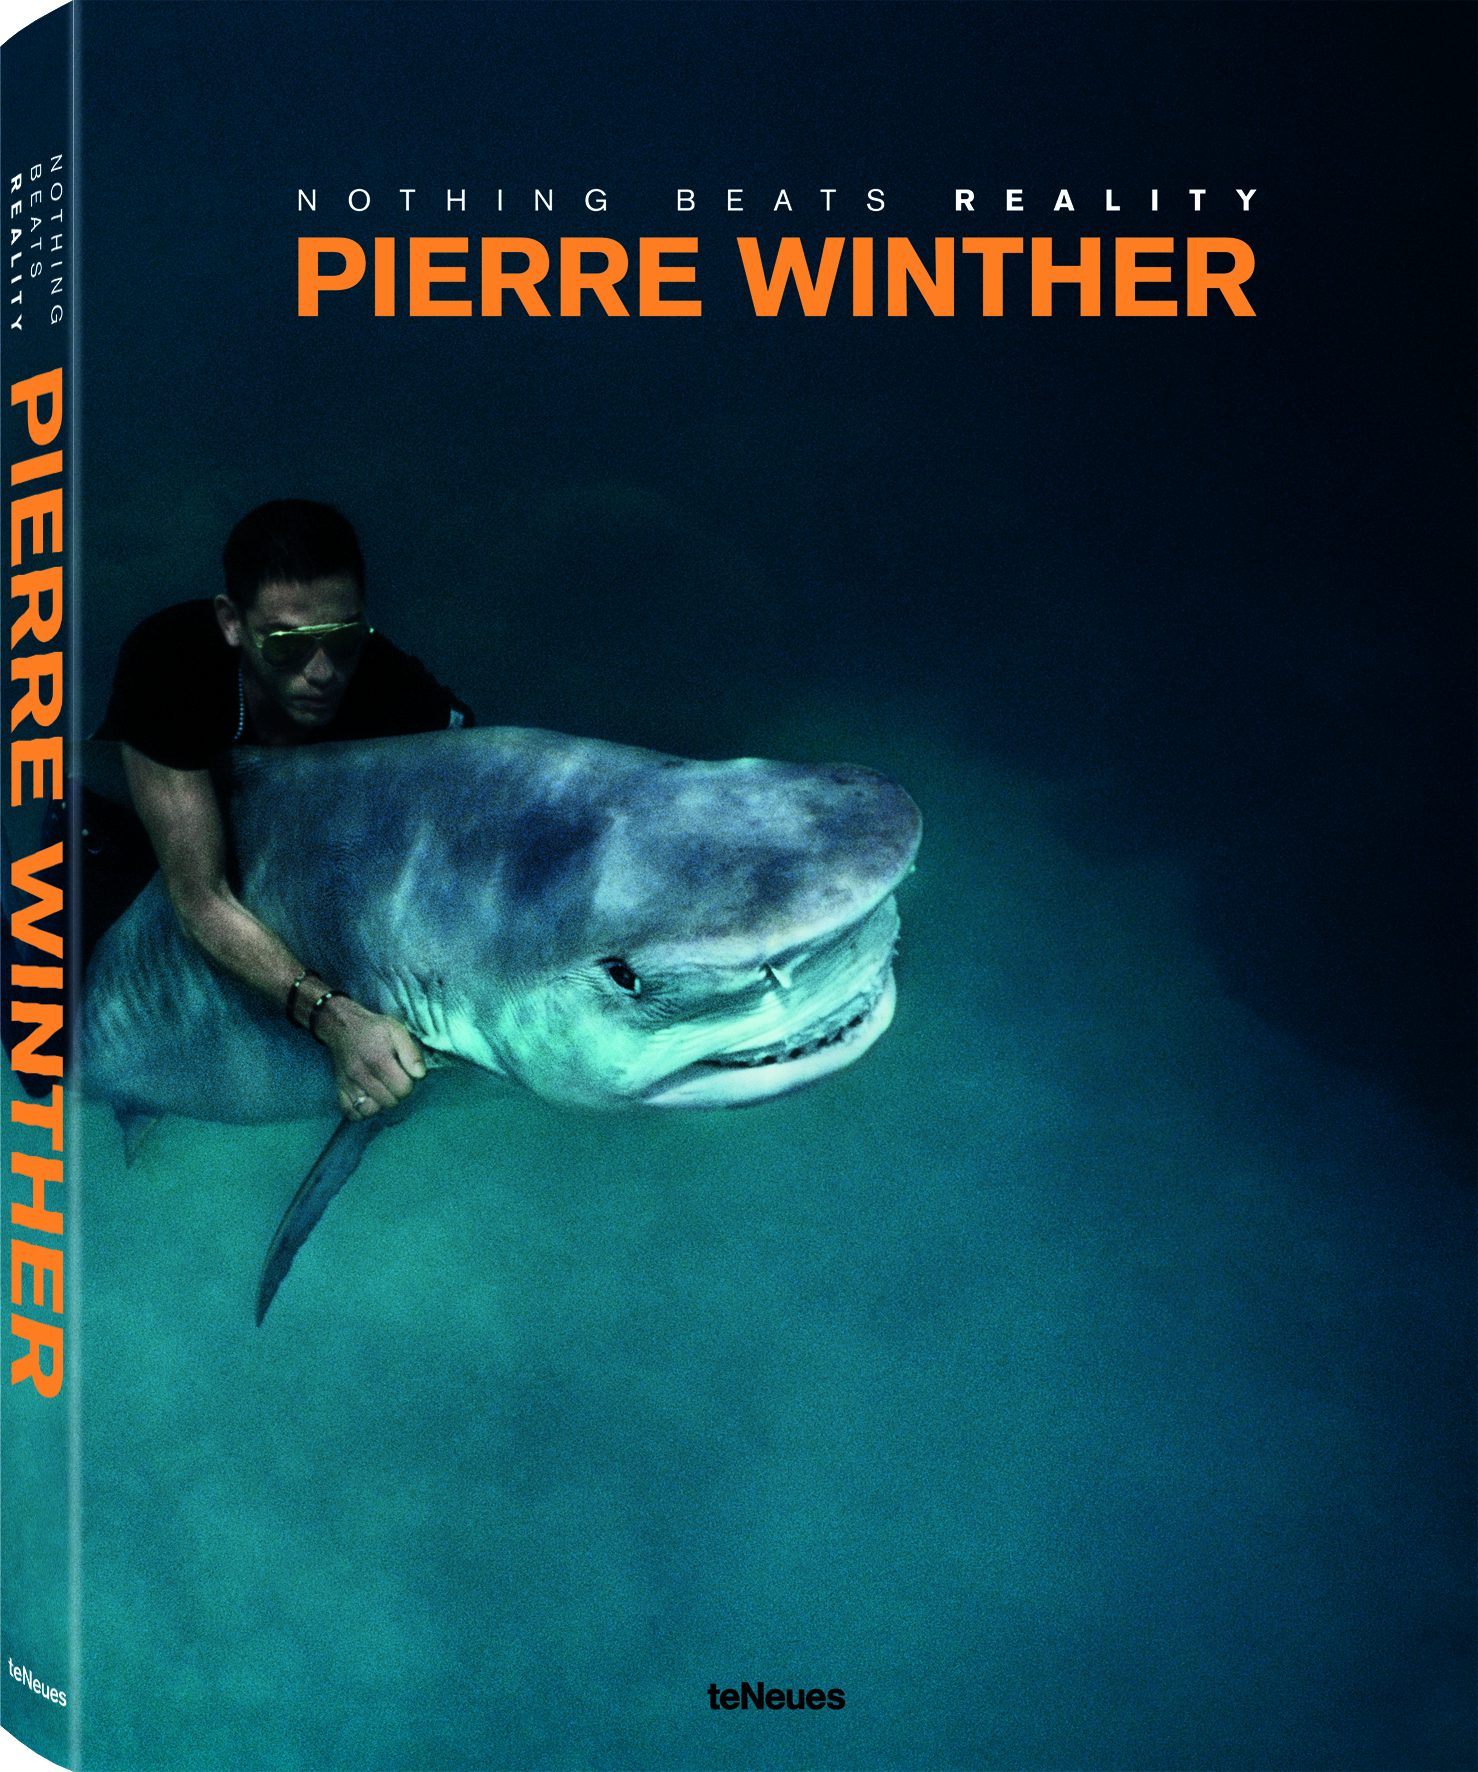 © Nothing Beats Reality by Pierre Winther, to be published by teNeues in March 2015, € 98 -  www.teneues.com .  The Under Water Project, Shark Riding, 1992  - Photo © 2014 by Pierre Winther. All rights reserved.  www.pierrewinther.com